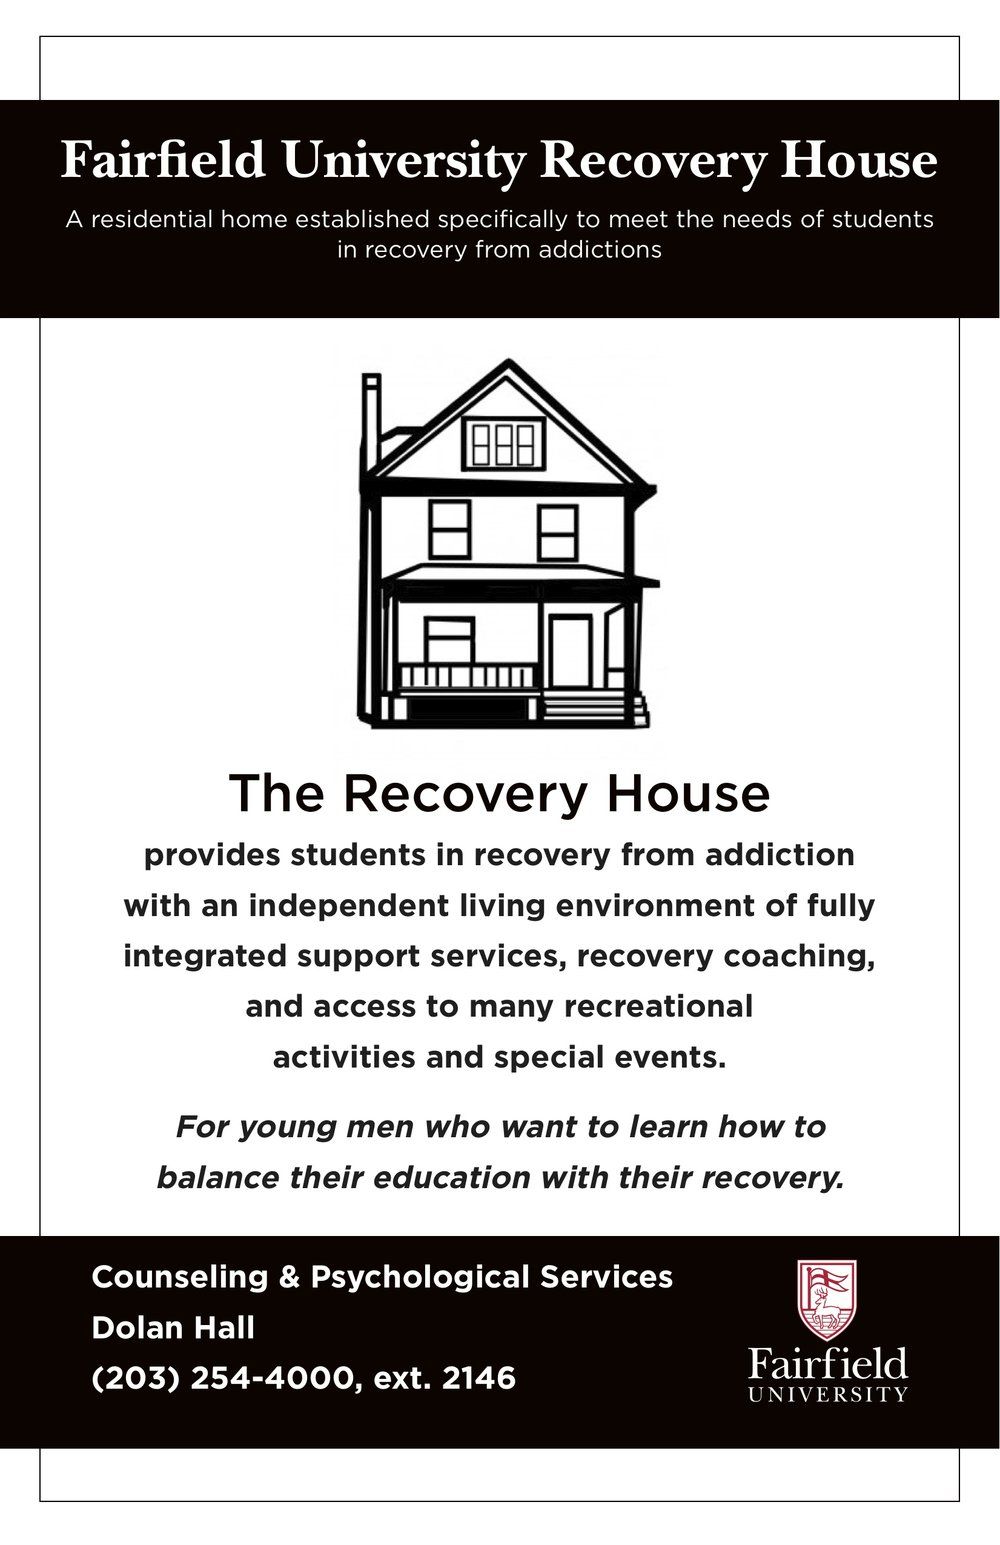 Fairfield University Recovery House Poster.jpg